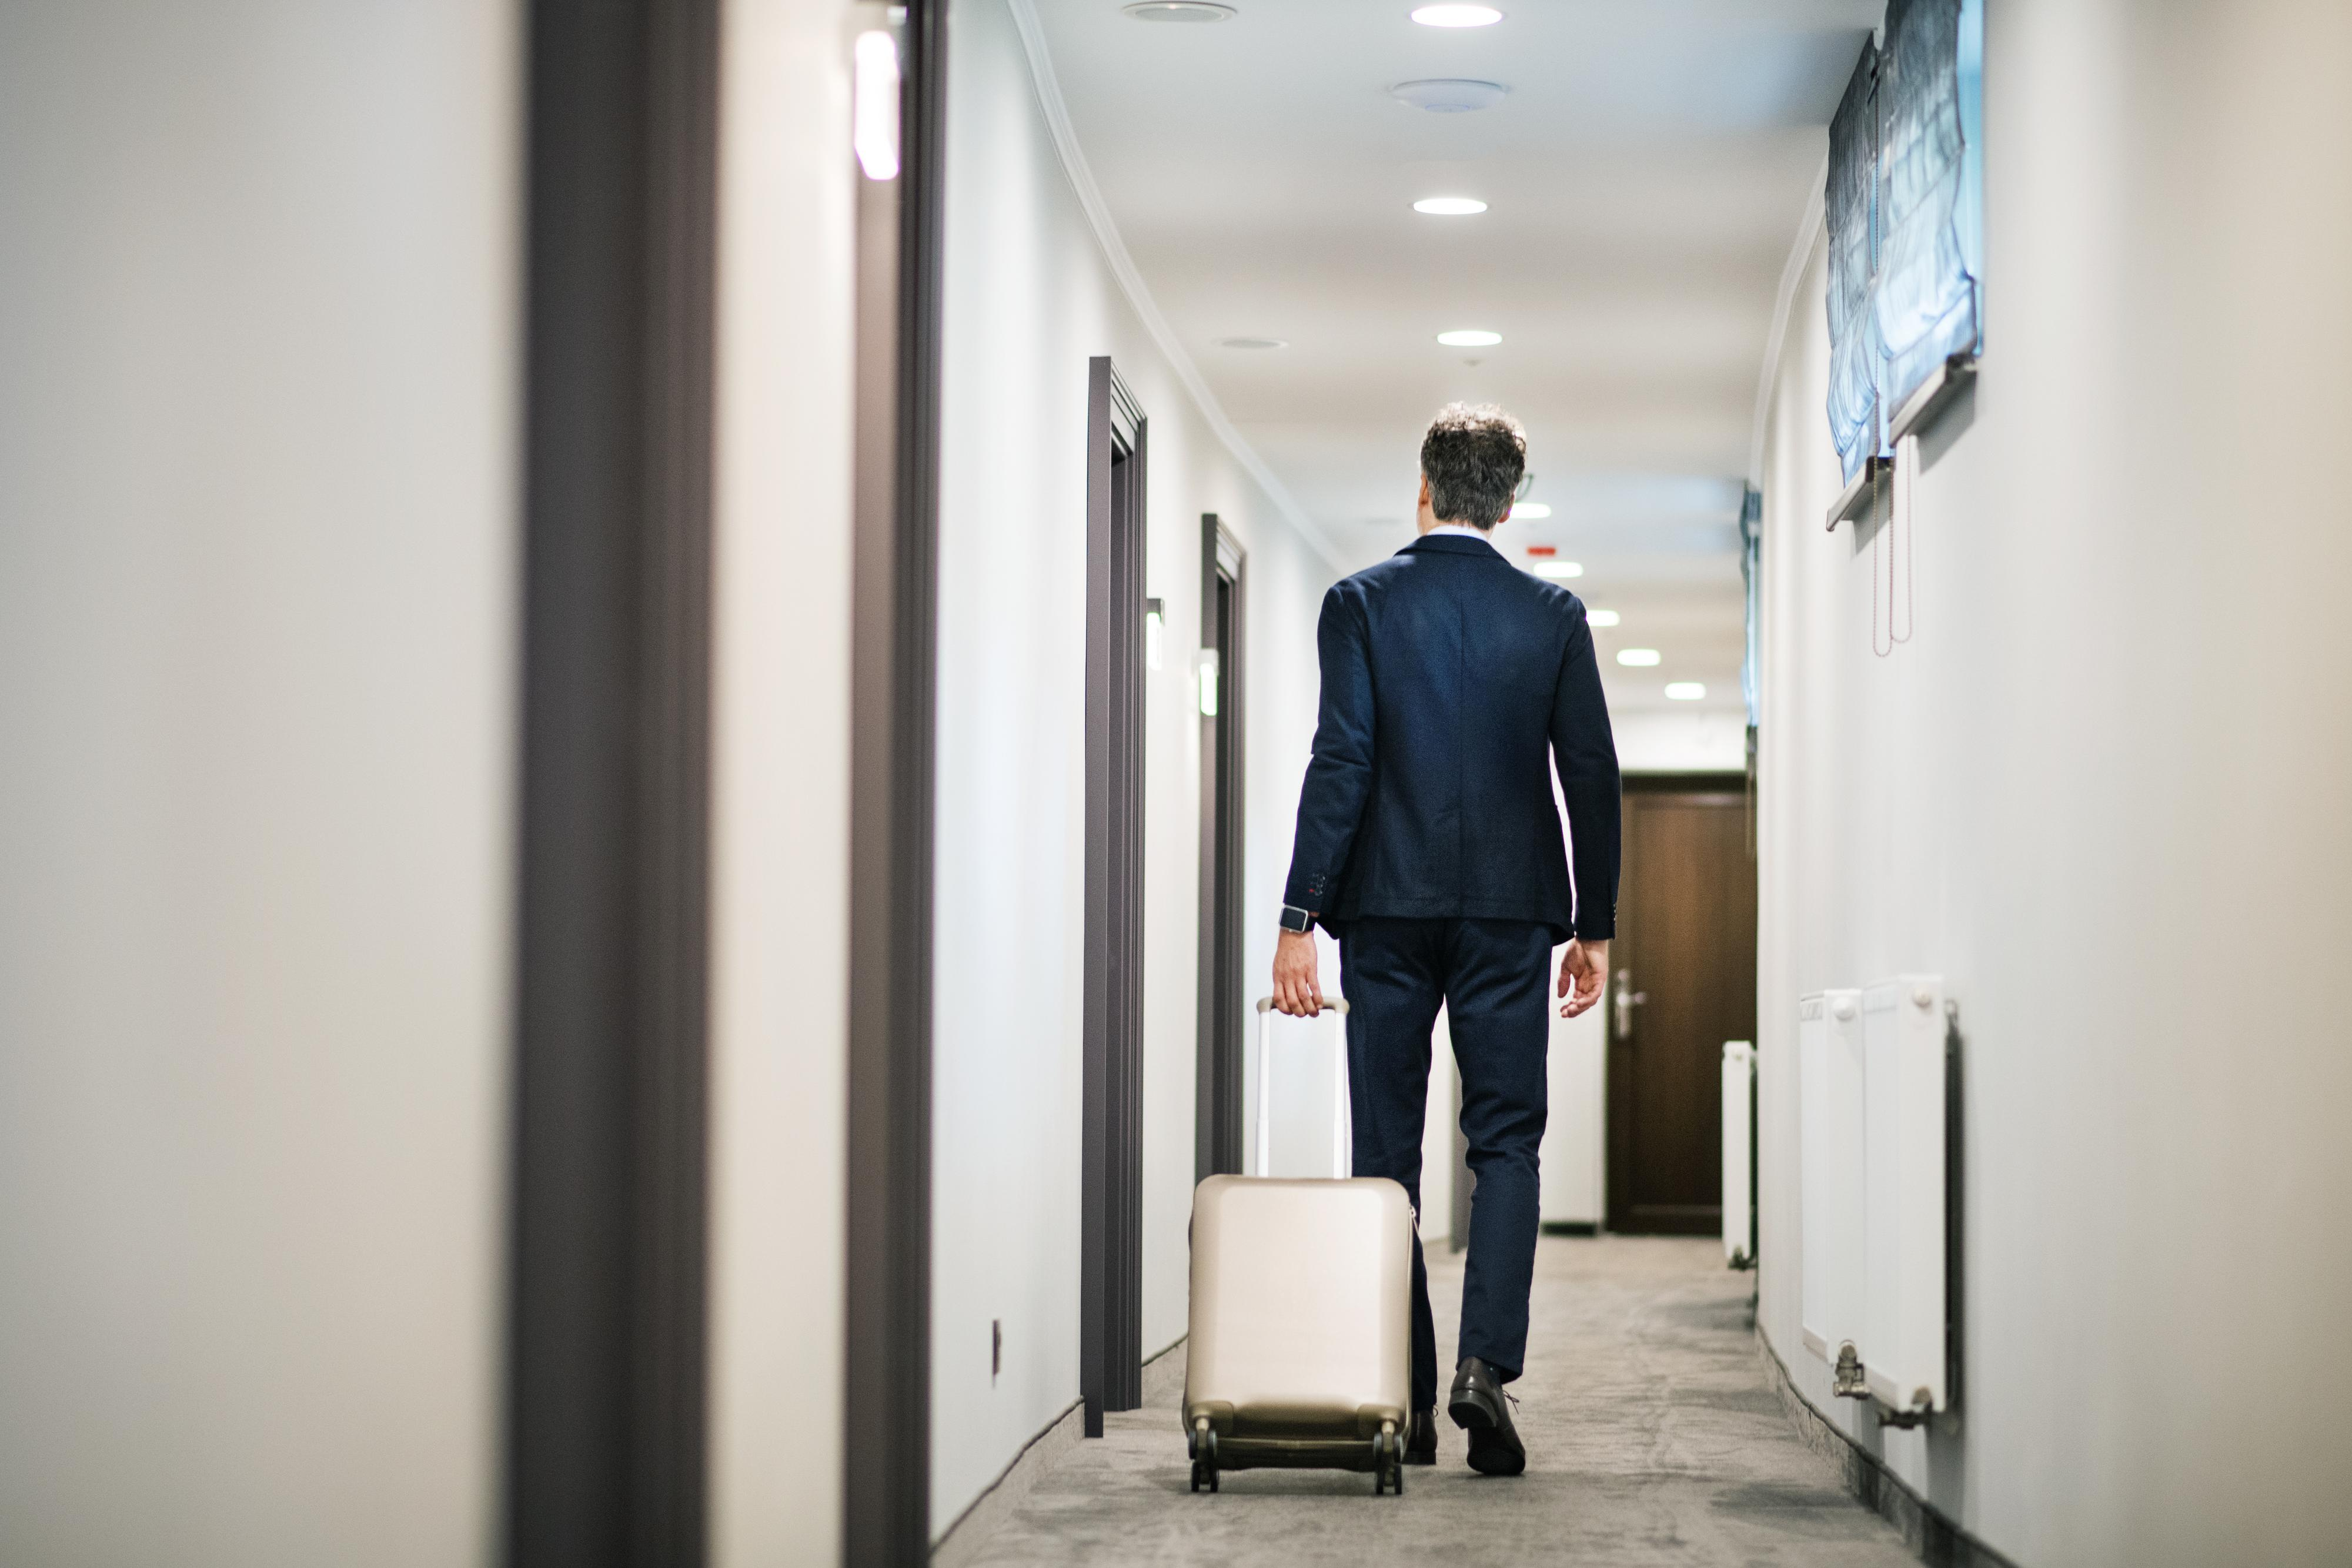 Businessman walking with luggage in a hotel corridor.